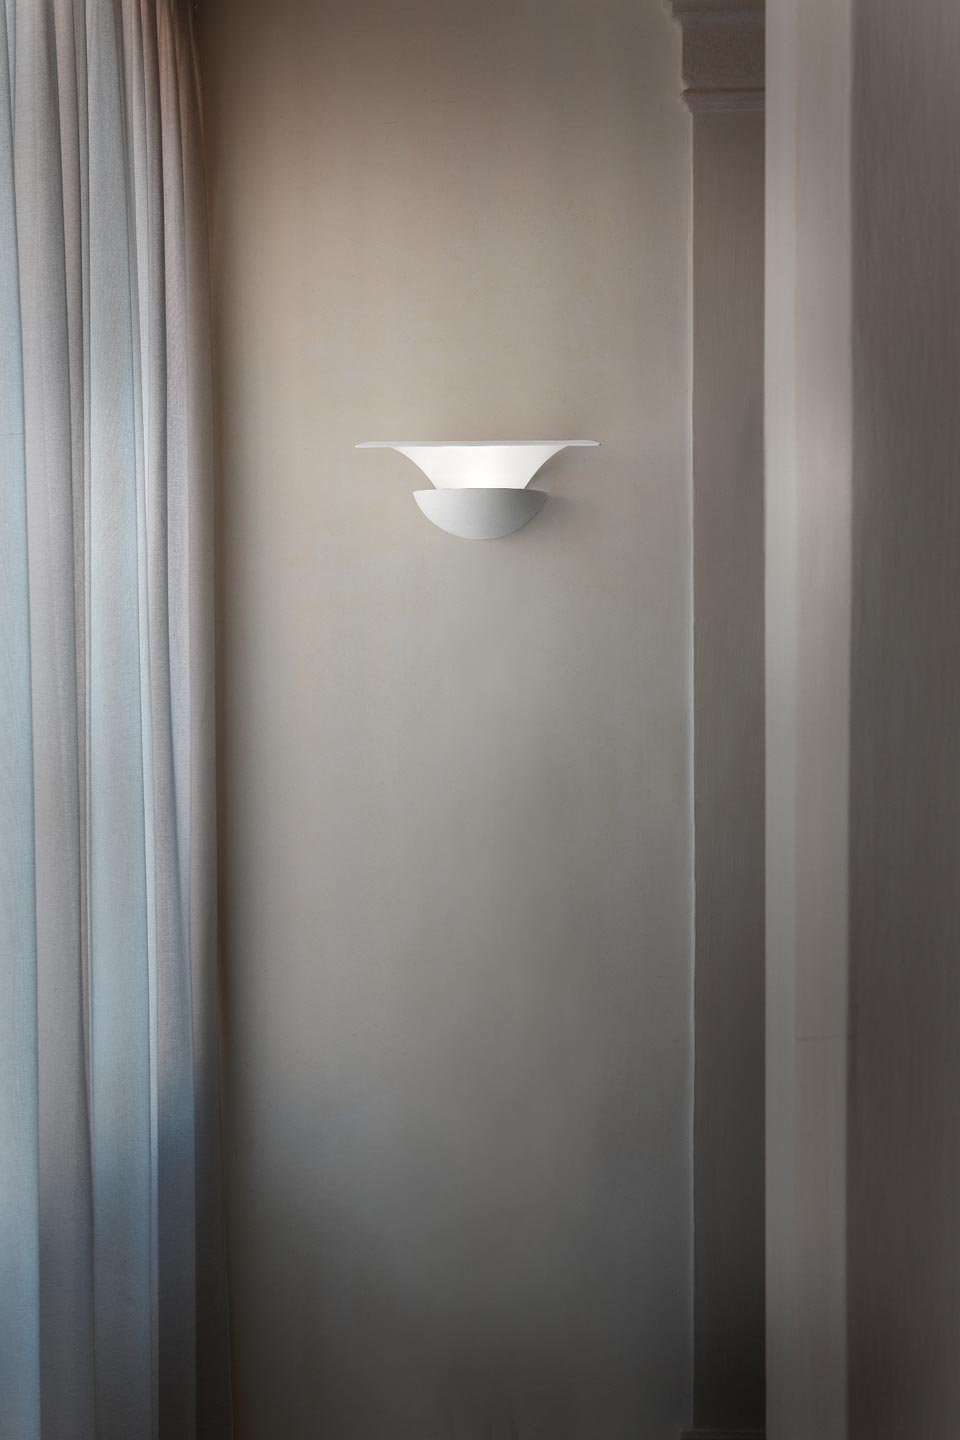 Lacquered white petal wall light in aluminium Blossomy. Masiero.